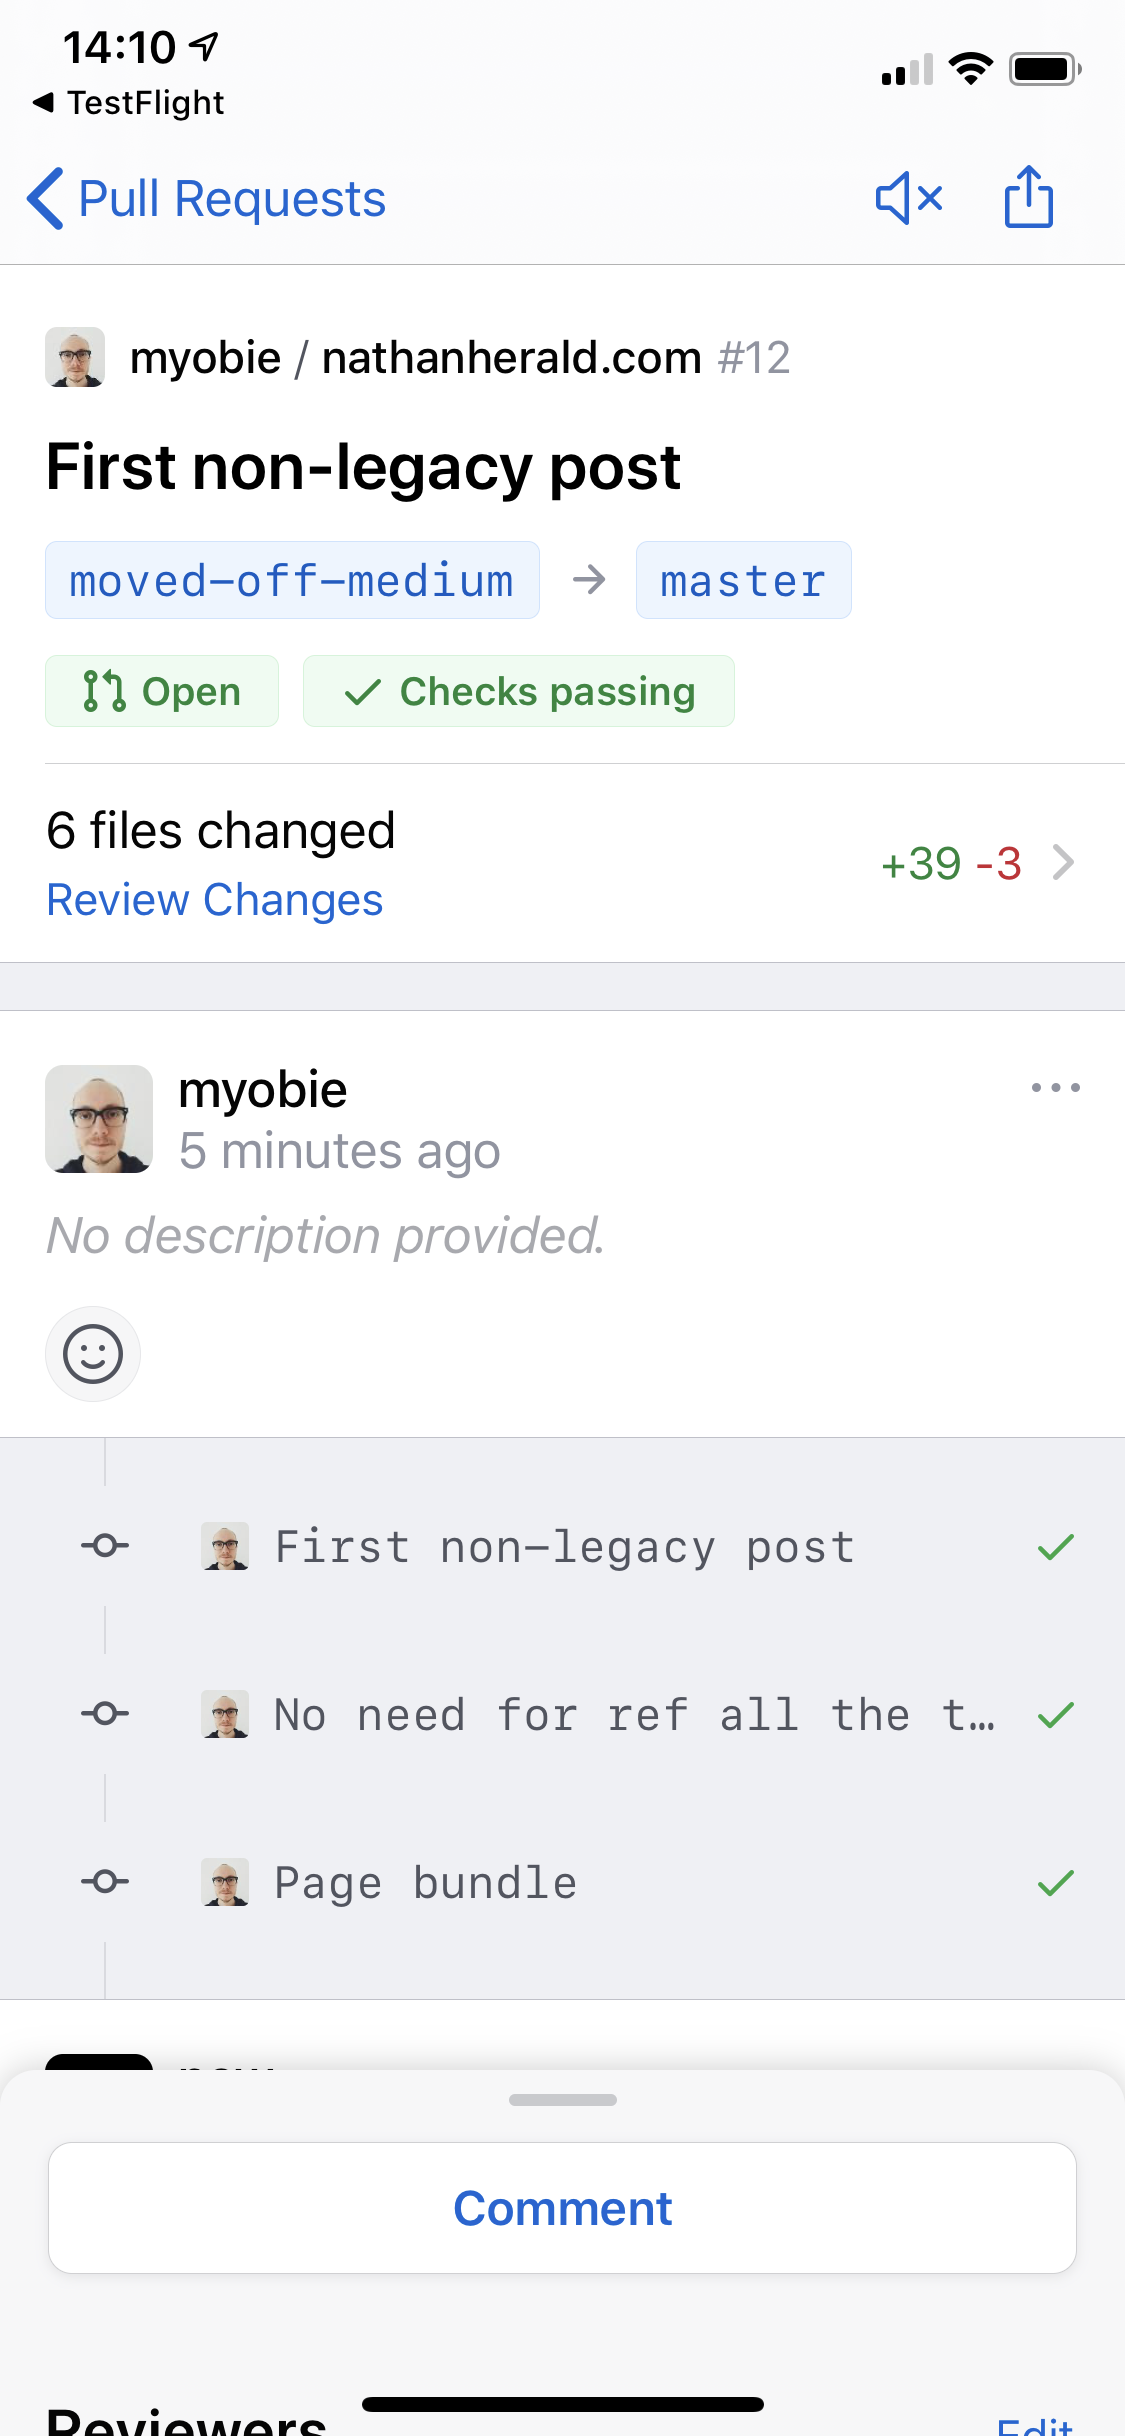 Screenshot of the GitHub Mobile app showing the Pull Request for this post